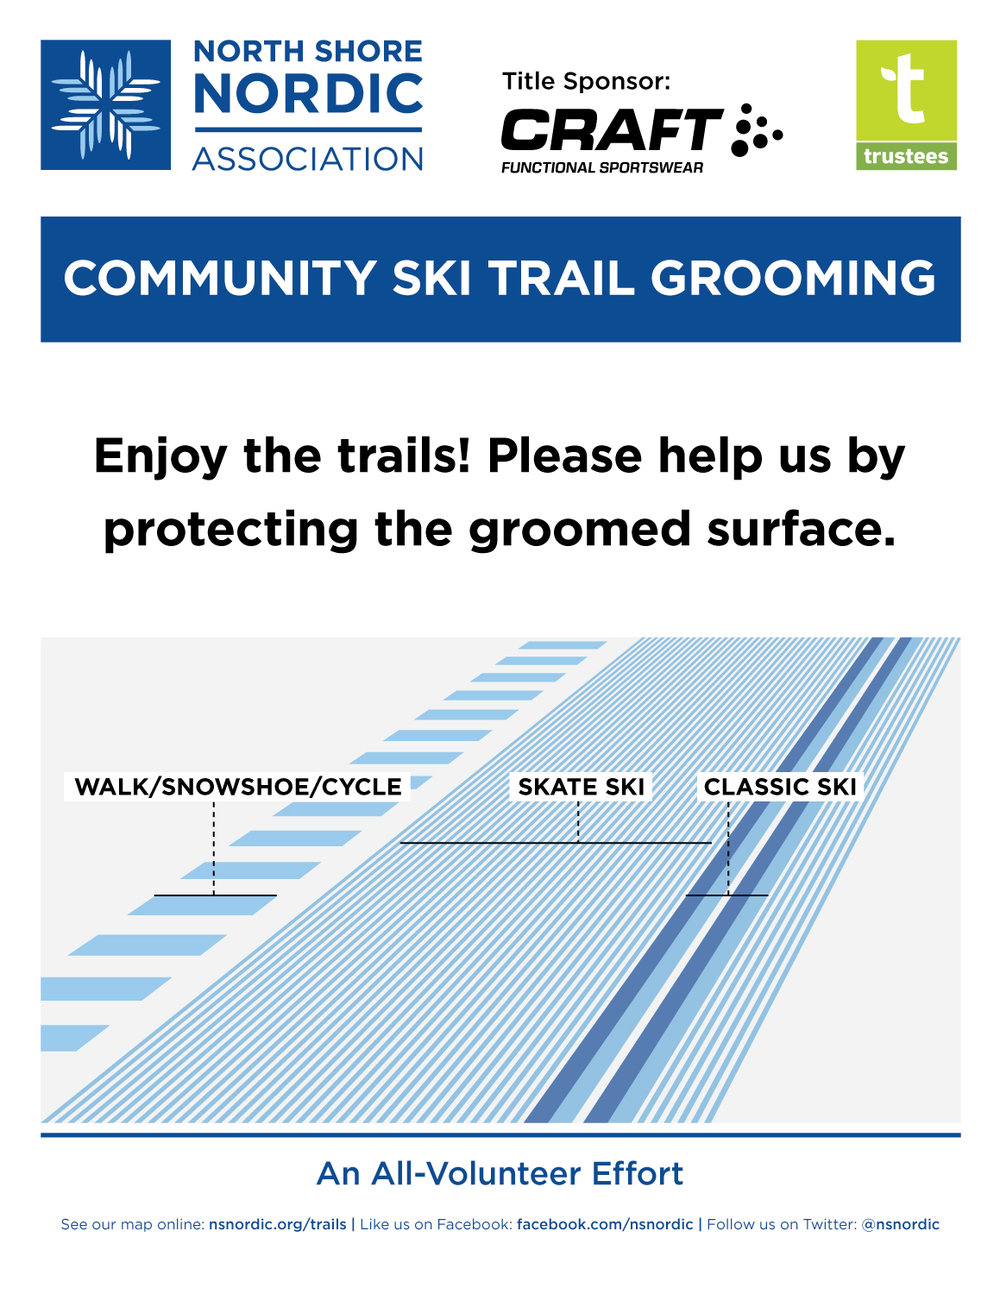 Trail signage for public awareness, wayfinding, and trail etiquette.